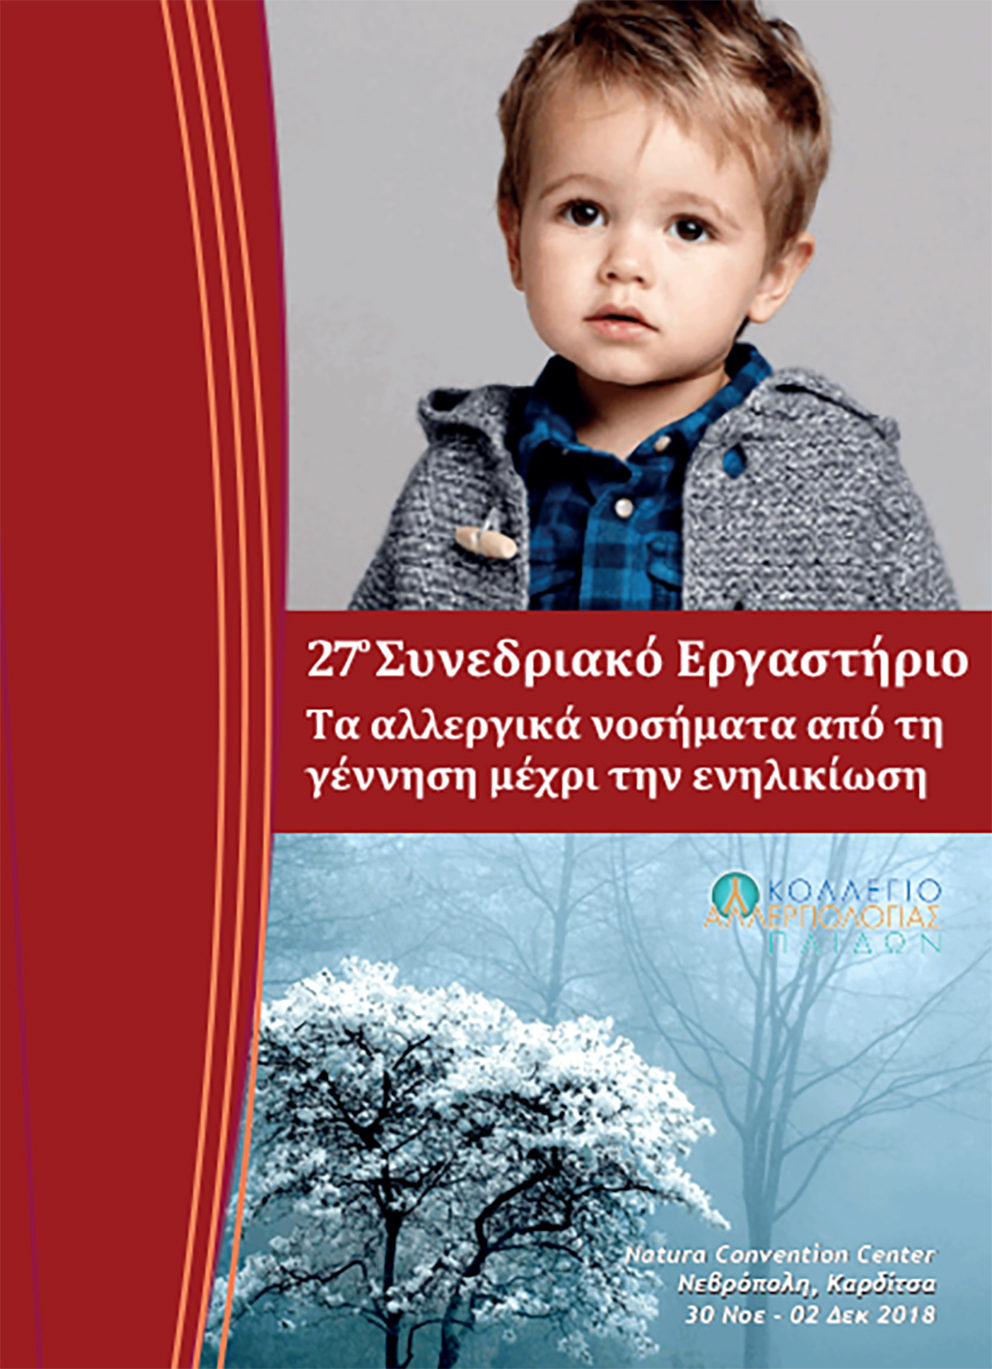 27th Allergy Workshop: Allergic Diseases from Birth to Adulthood